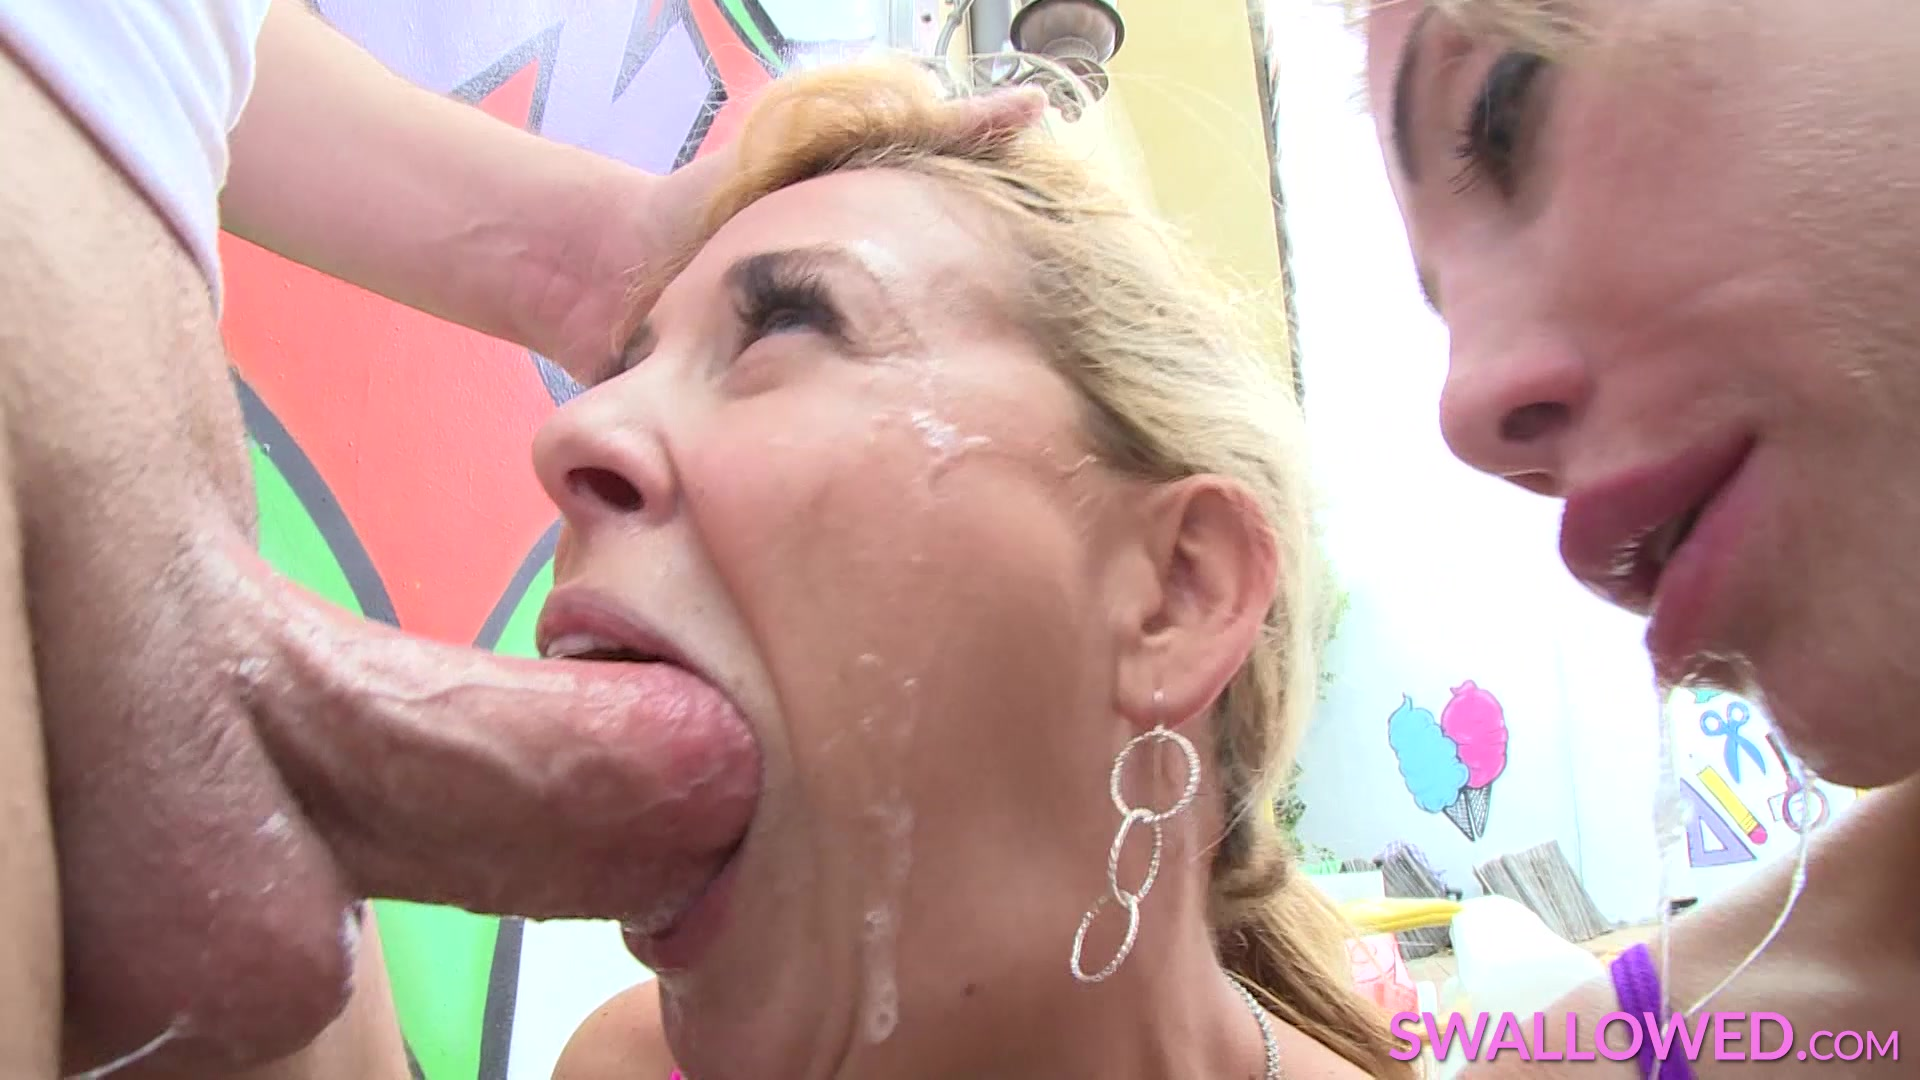 4 minutes of slobbing my dick 4